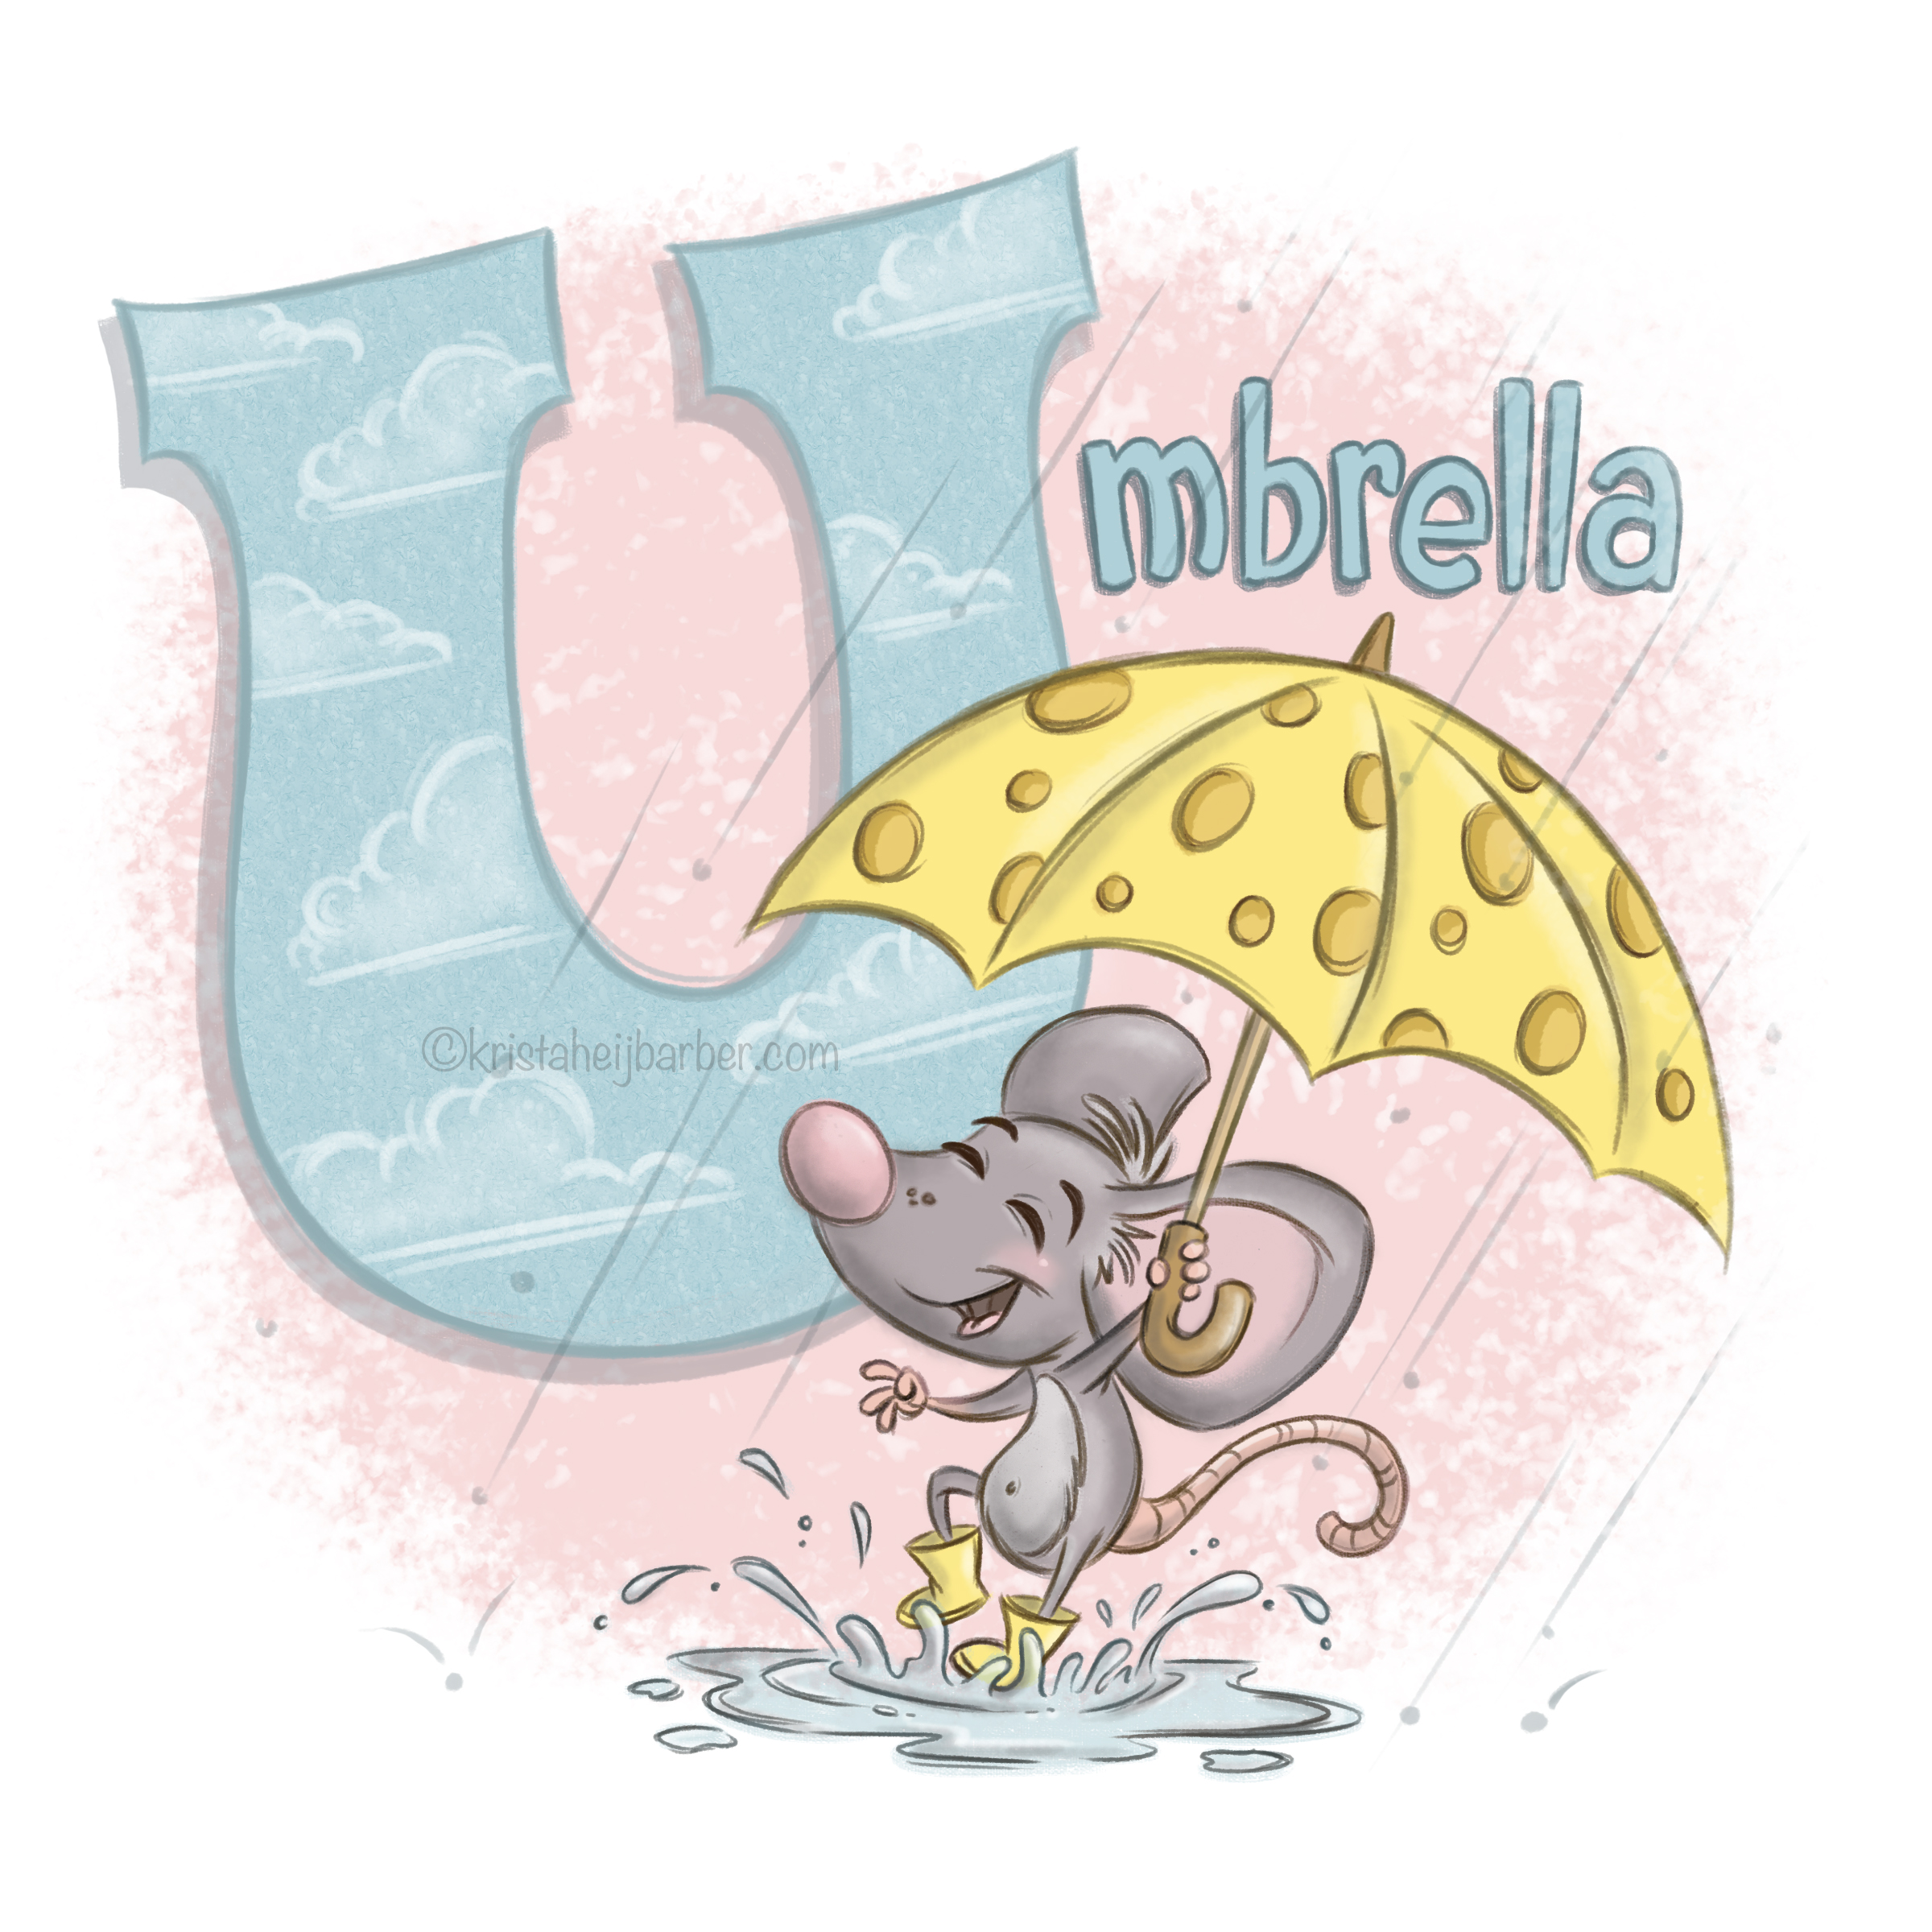 U is for Umbrella-2.jpg